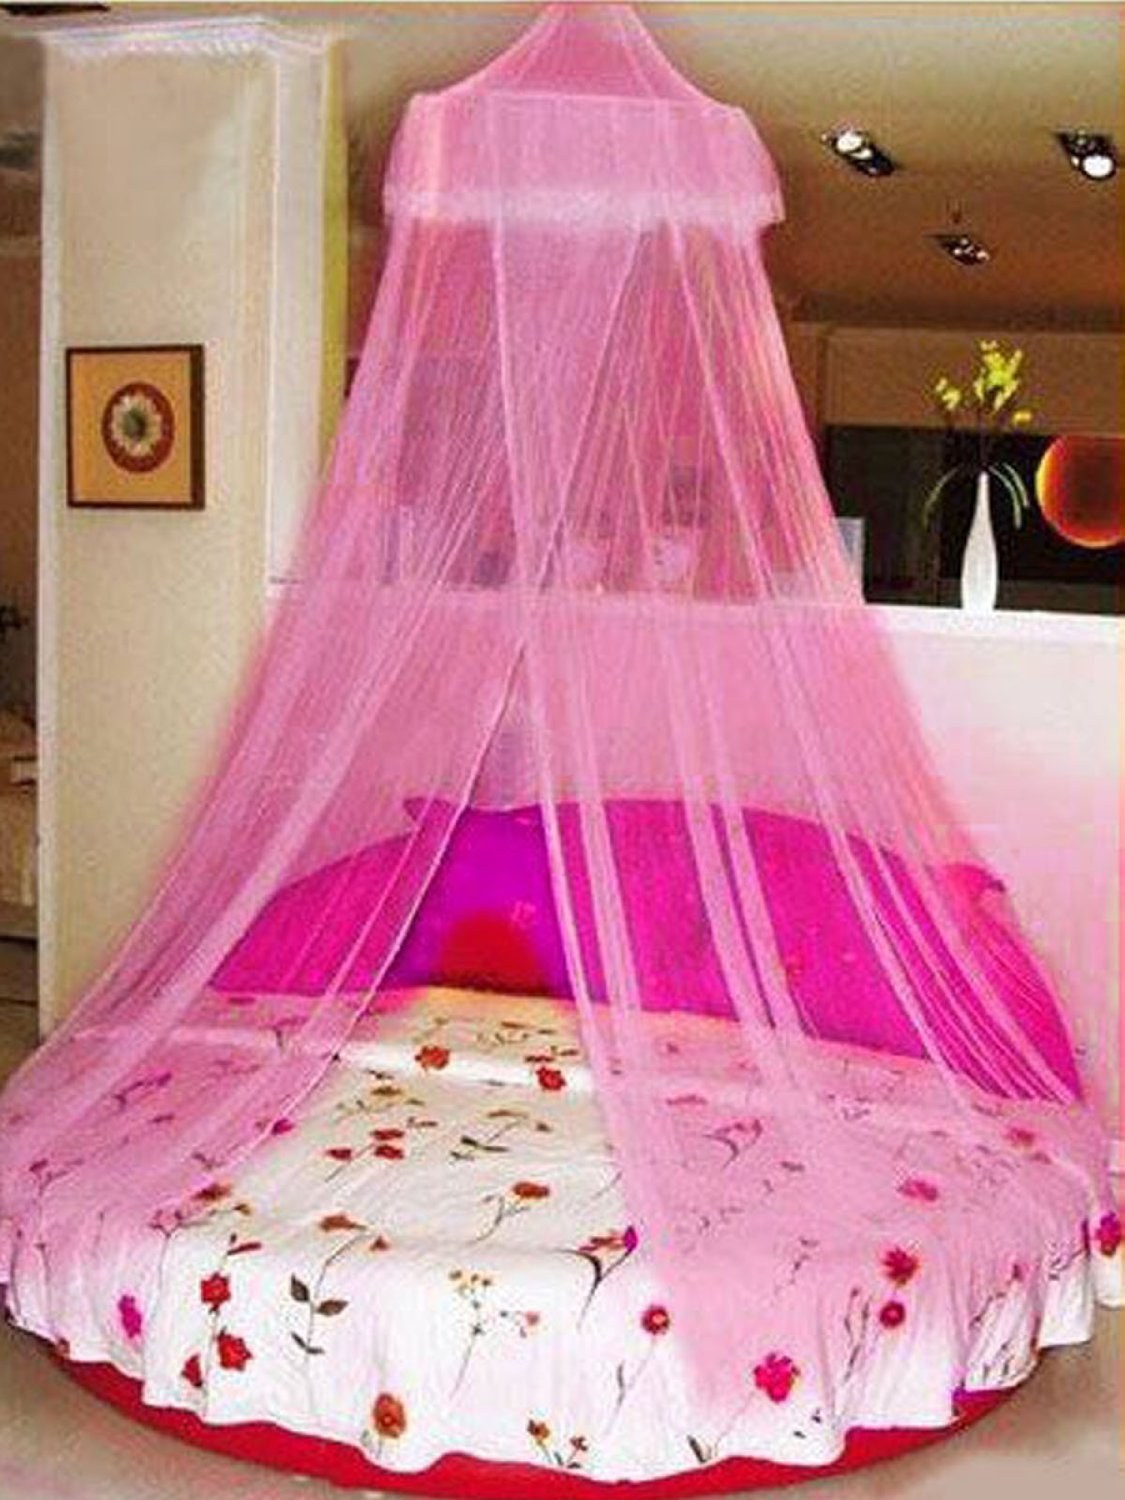 COOLOUT Soft Dome Princess Bed Nets Mosquito Net for Bed (Pink) Baby ,Summer , European Style Home Anti Malaria Bed Net Toddler Bed Crib Canopy Netting Dome Nets Elegant Round Lace Curtain Dome Bed Canopy Netting Mosquito Net